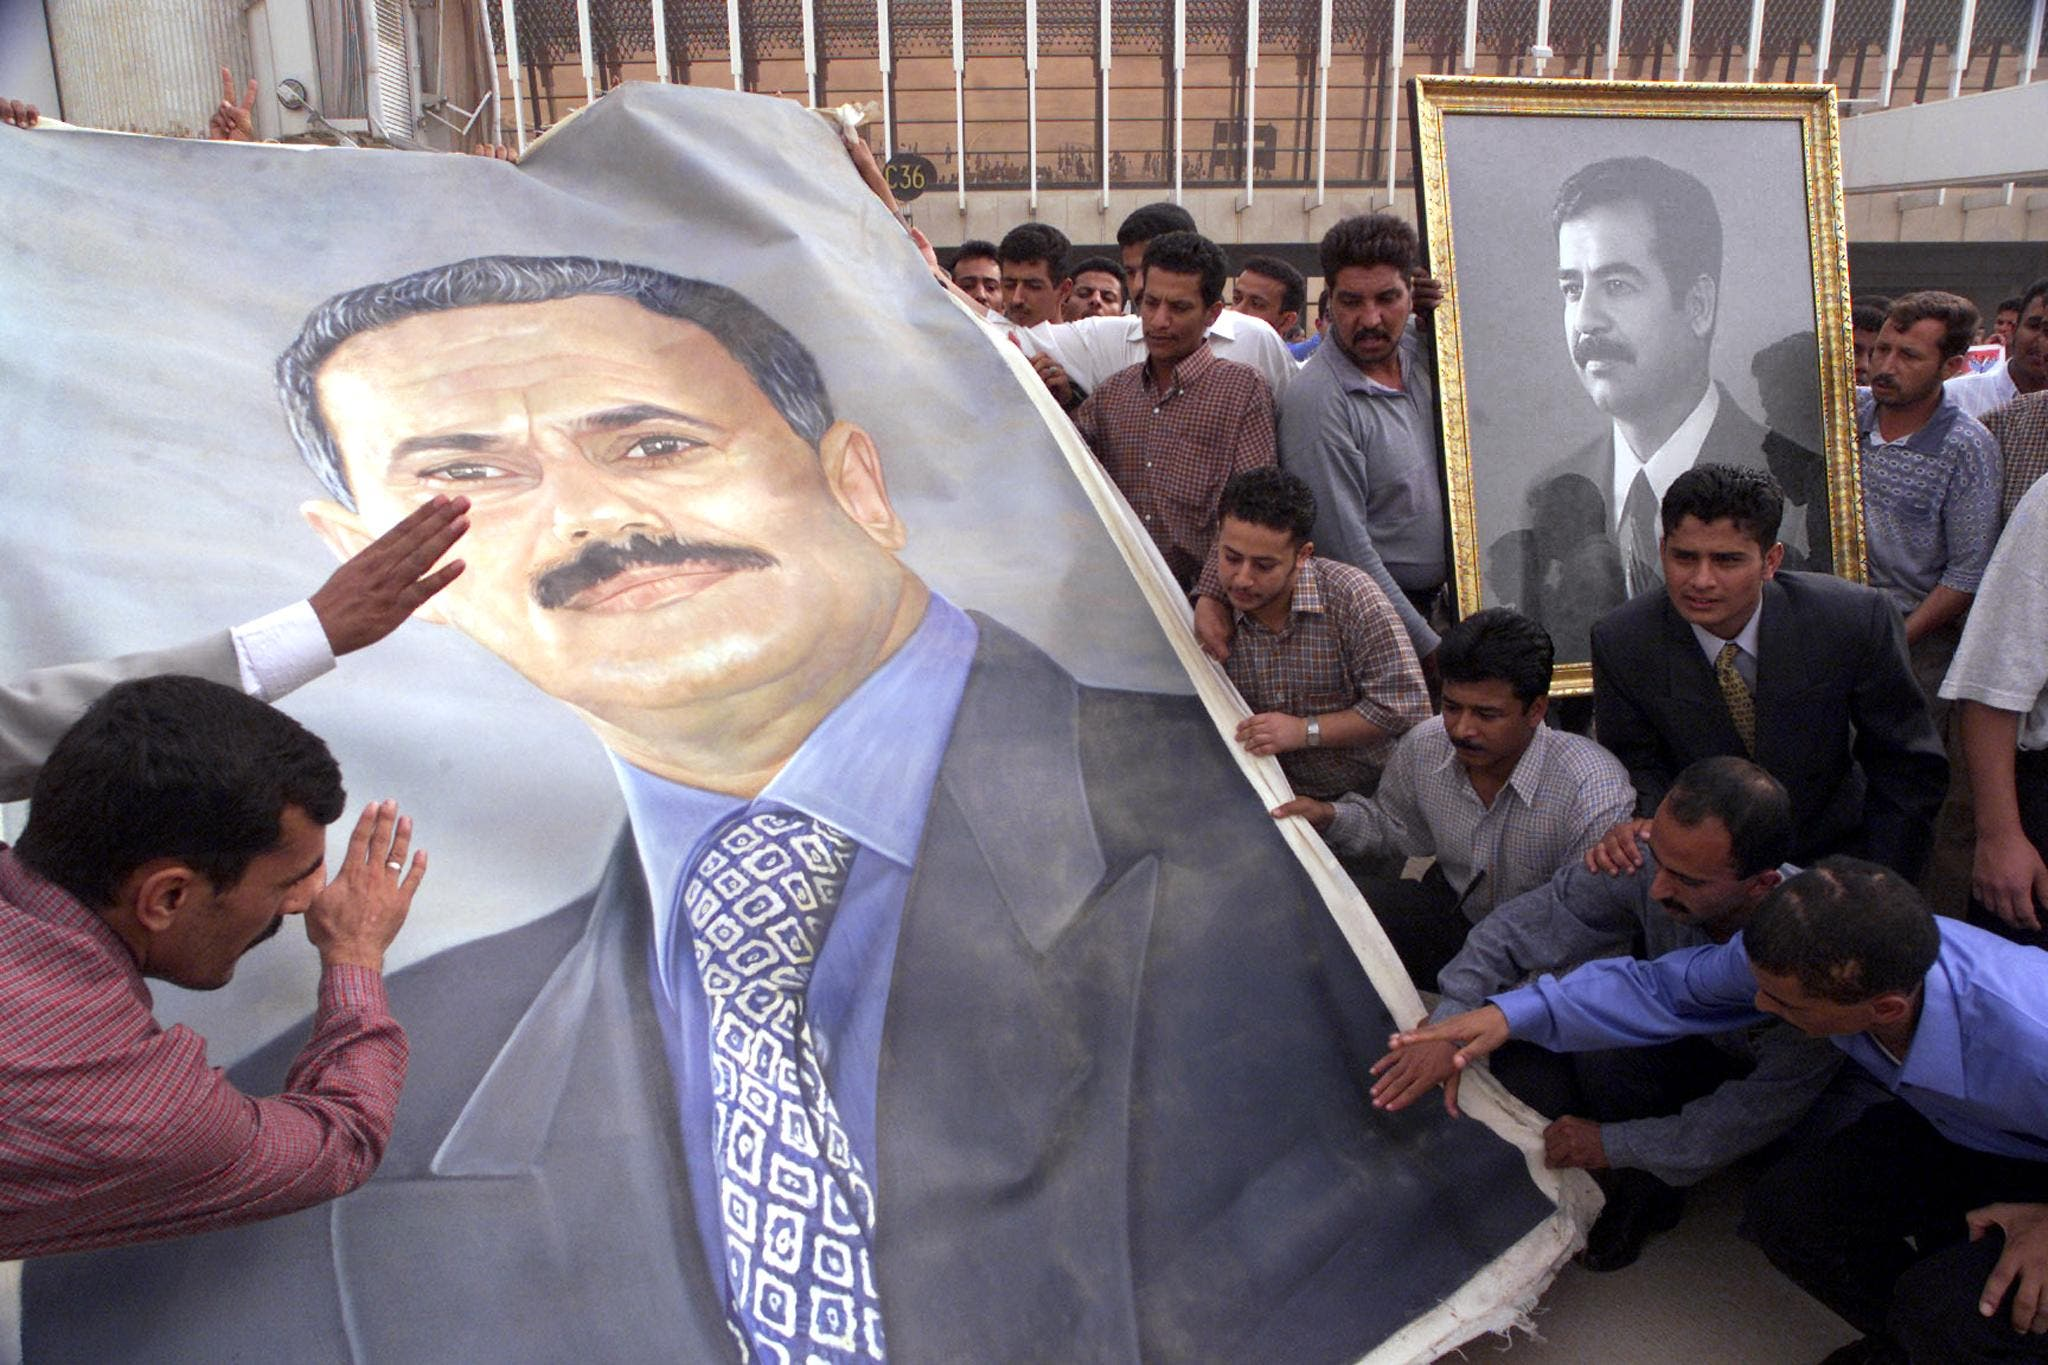 Iraqis and Yemenis hold portraits of their leaders, Saddam Hussein (R) and Ali Abdullah Saleh (L), at Saddam International Airport 29 September 2000. (AFP)